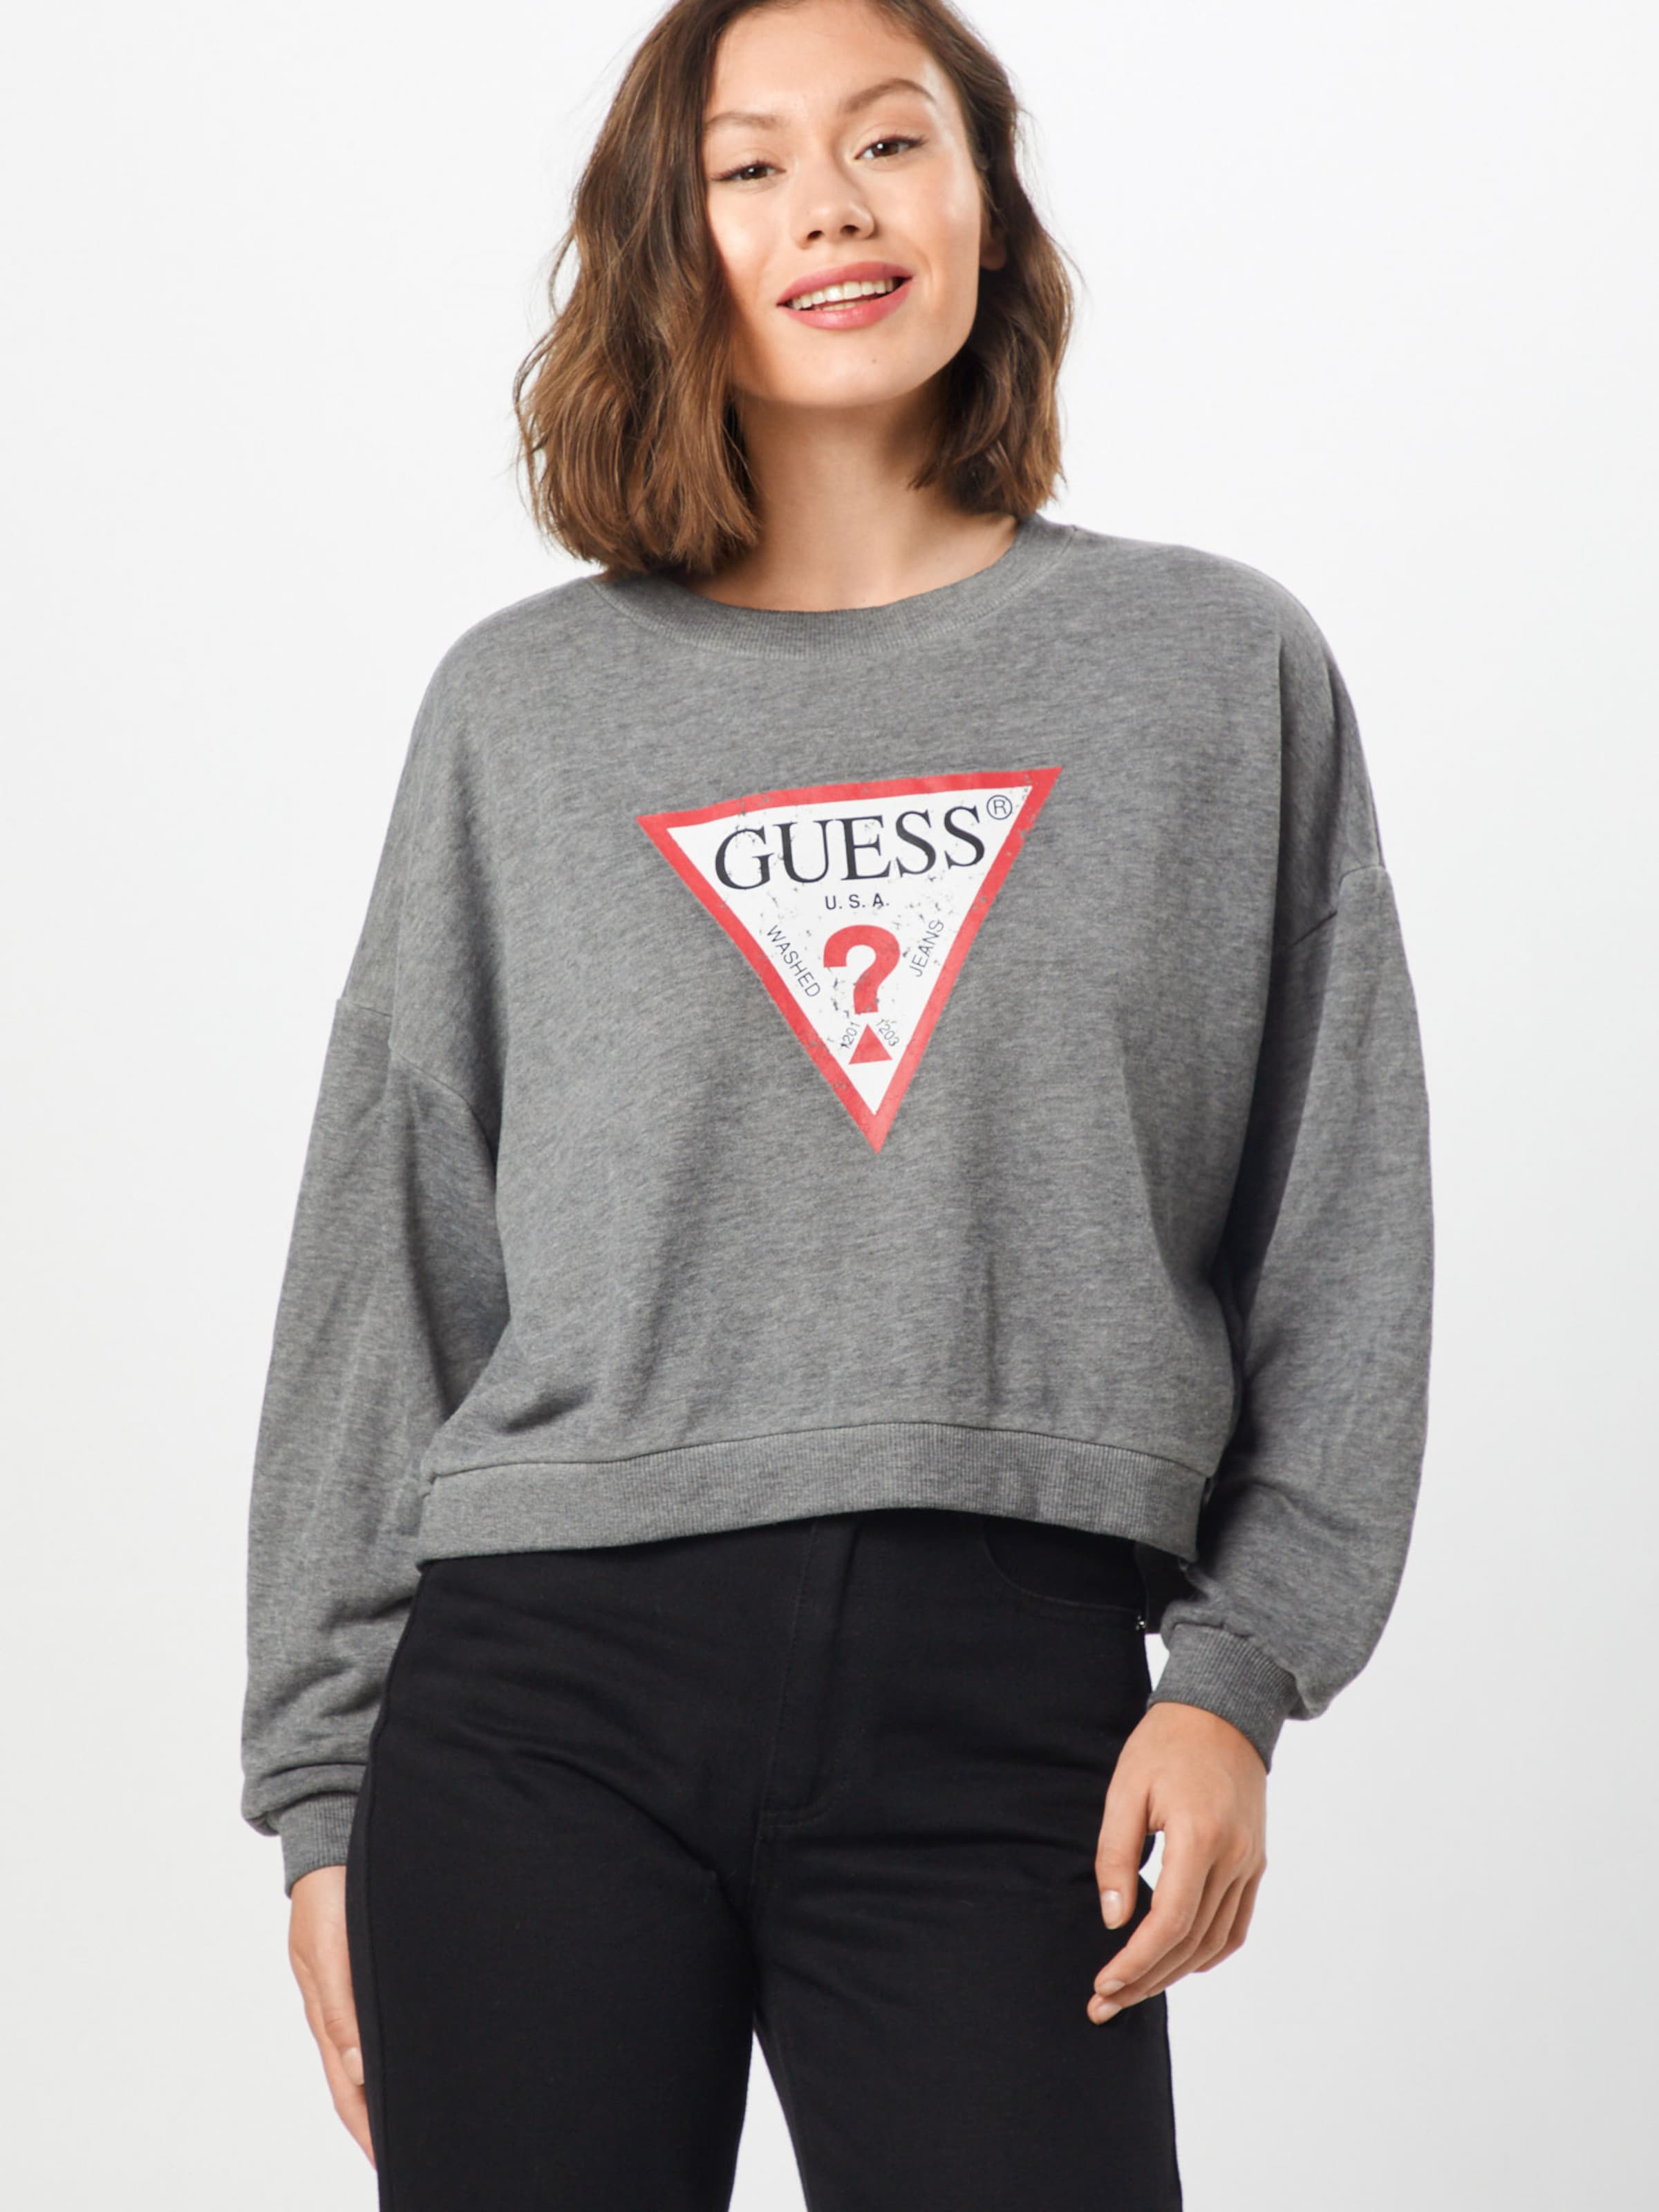 Gris Guess shirt En ChinéRouge Sweat QtshdCxr